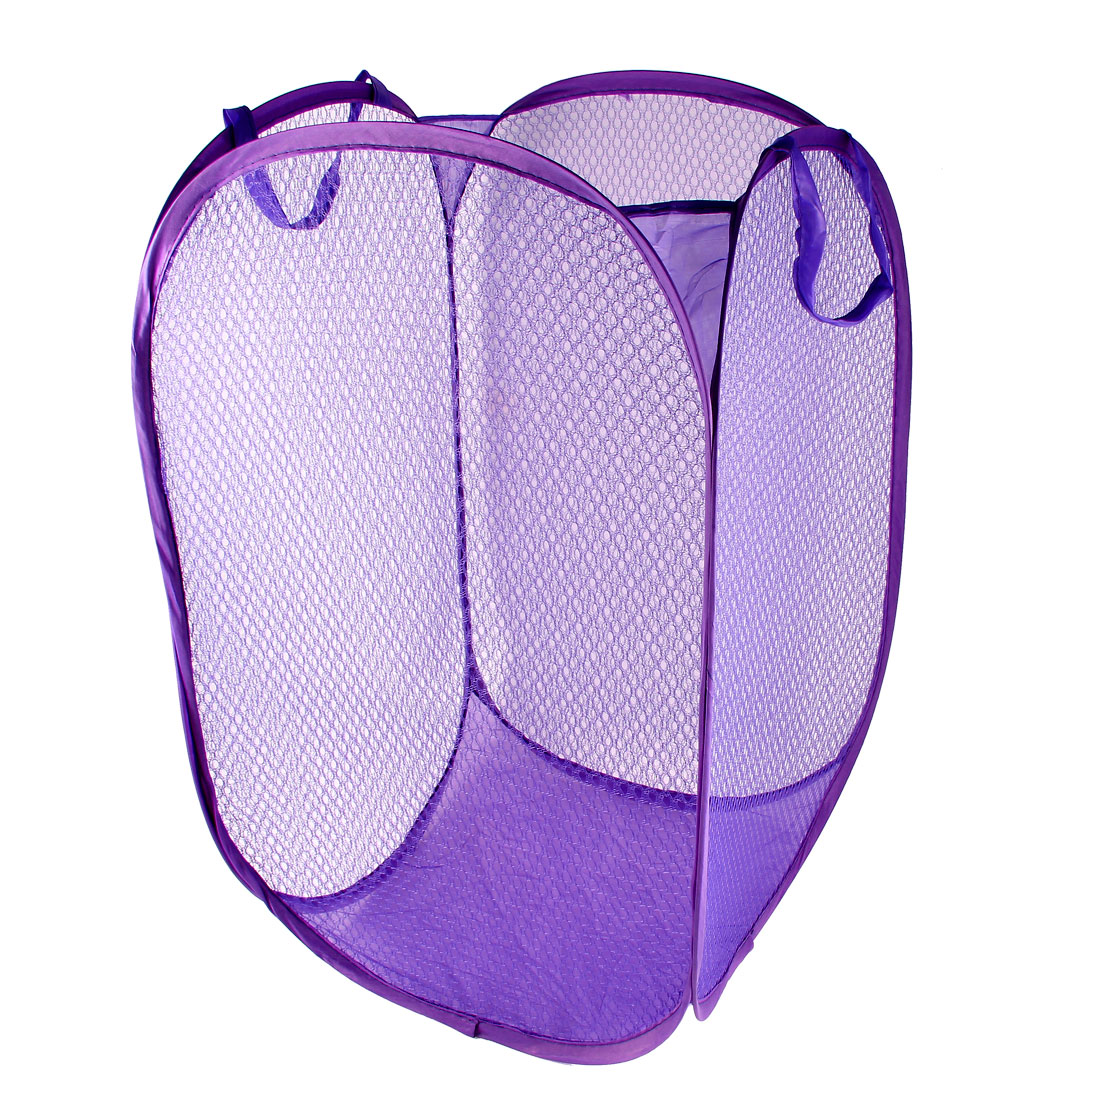 Laundry Bag Basket Pop Up Mesh Hamper Foldable Wash Clothes Storage Bin Purple